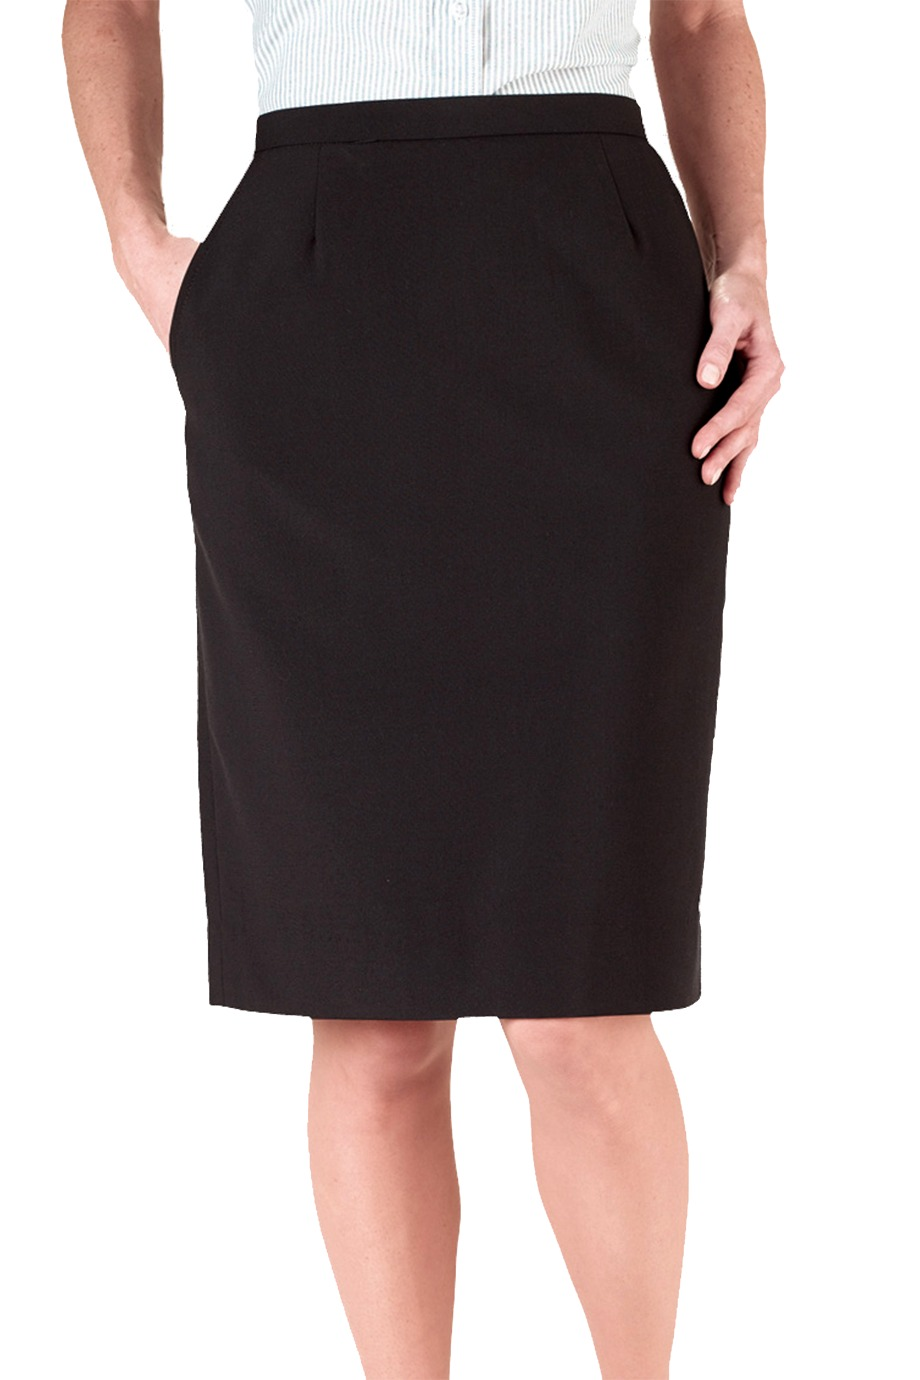 Edwards Garment 9799 - Women's Polyester Skirt